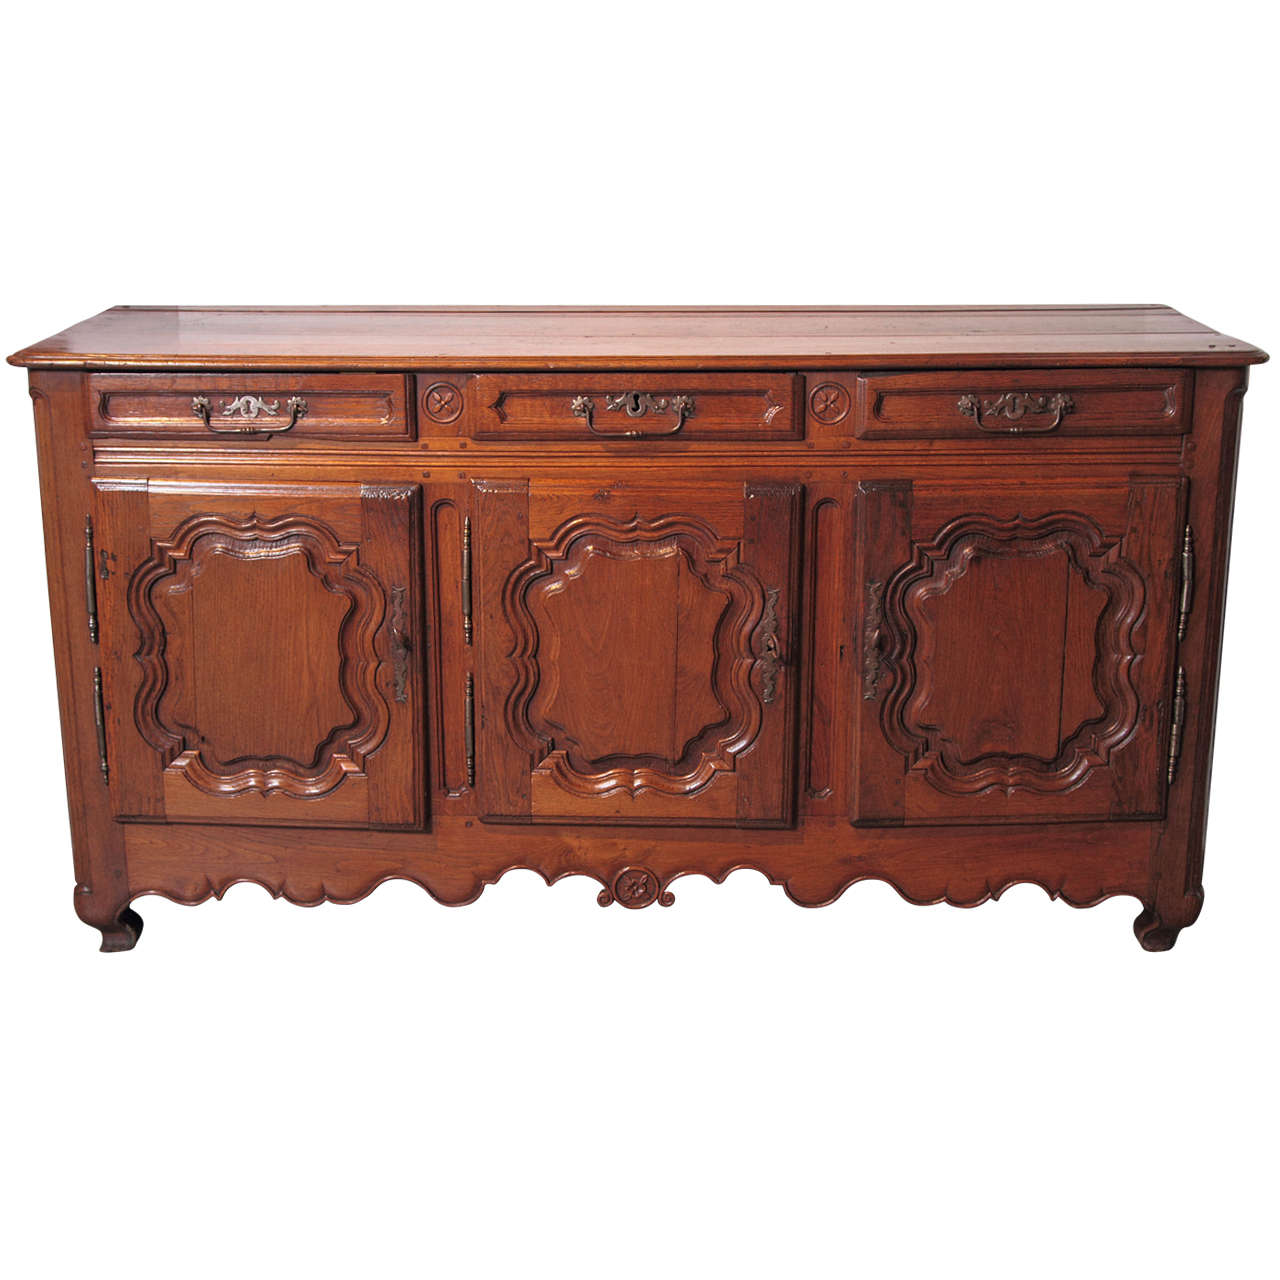 antique french enfilade circa 1850 for sale at 1stdibs. Black Bedroom Furniture Sets. Home Design Ideas